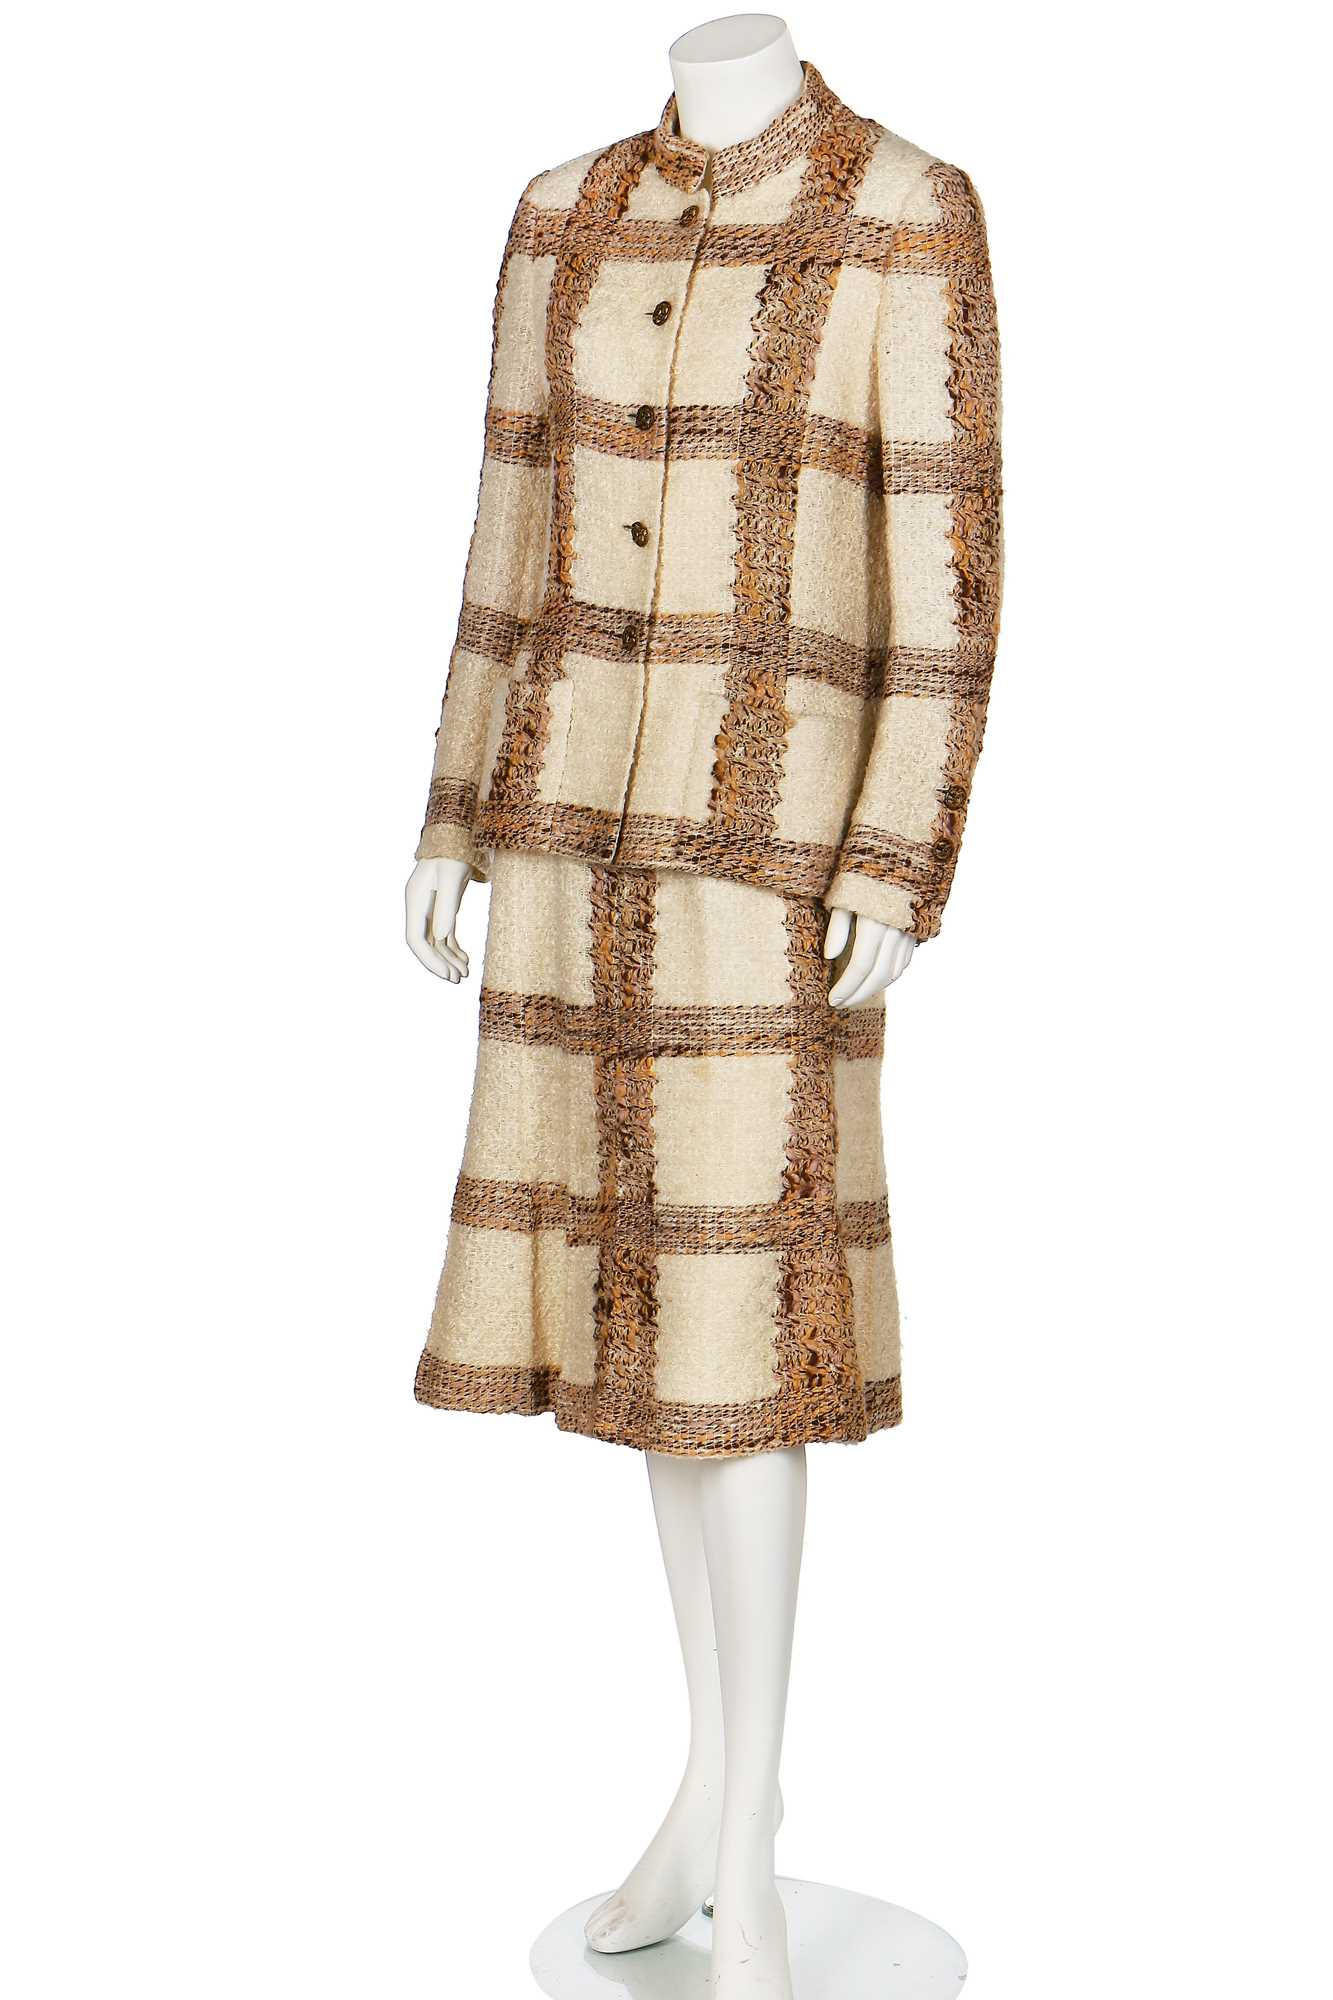 Lot 15 - A Chanel couture oatmeal and ivory tweed suit, 1969